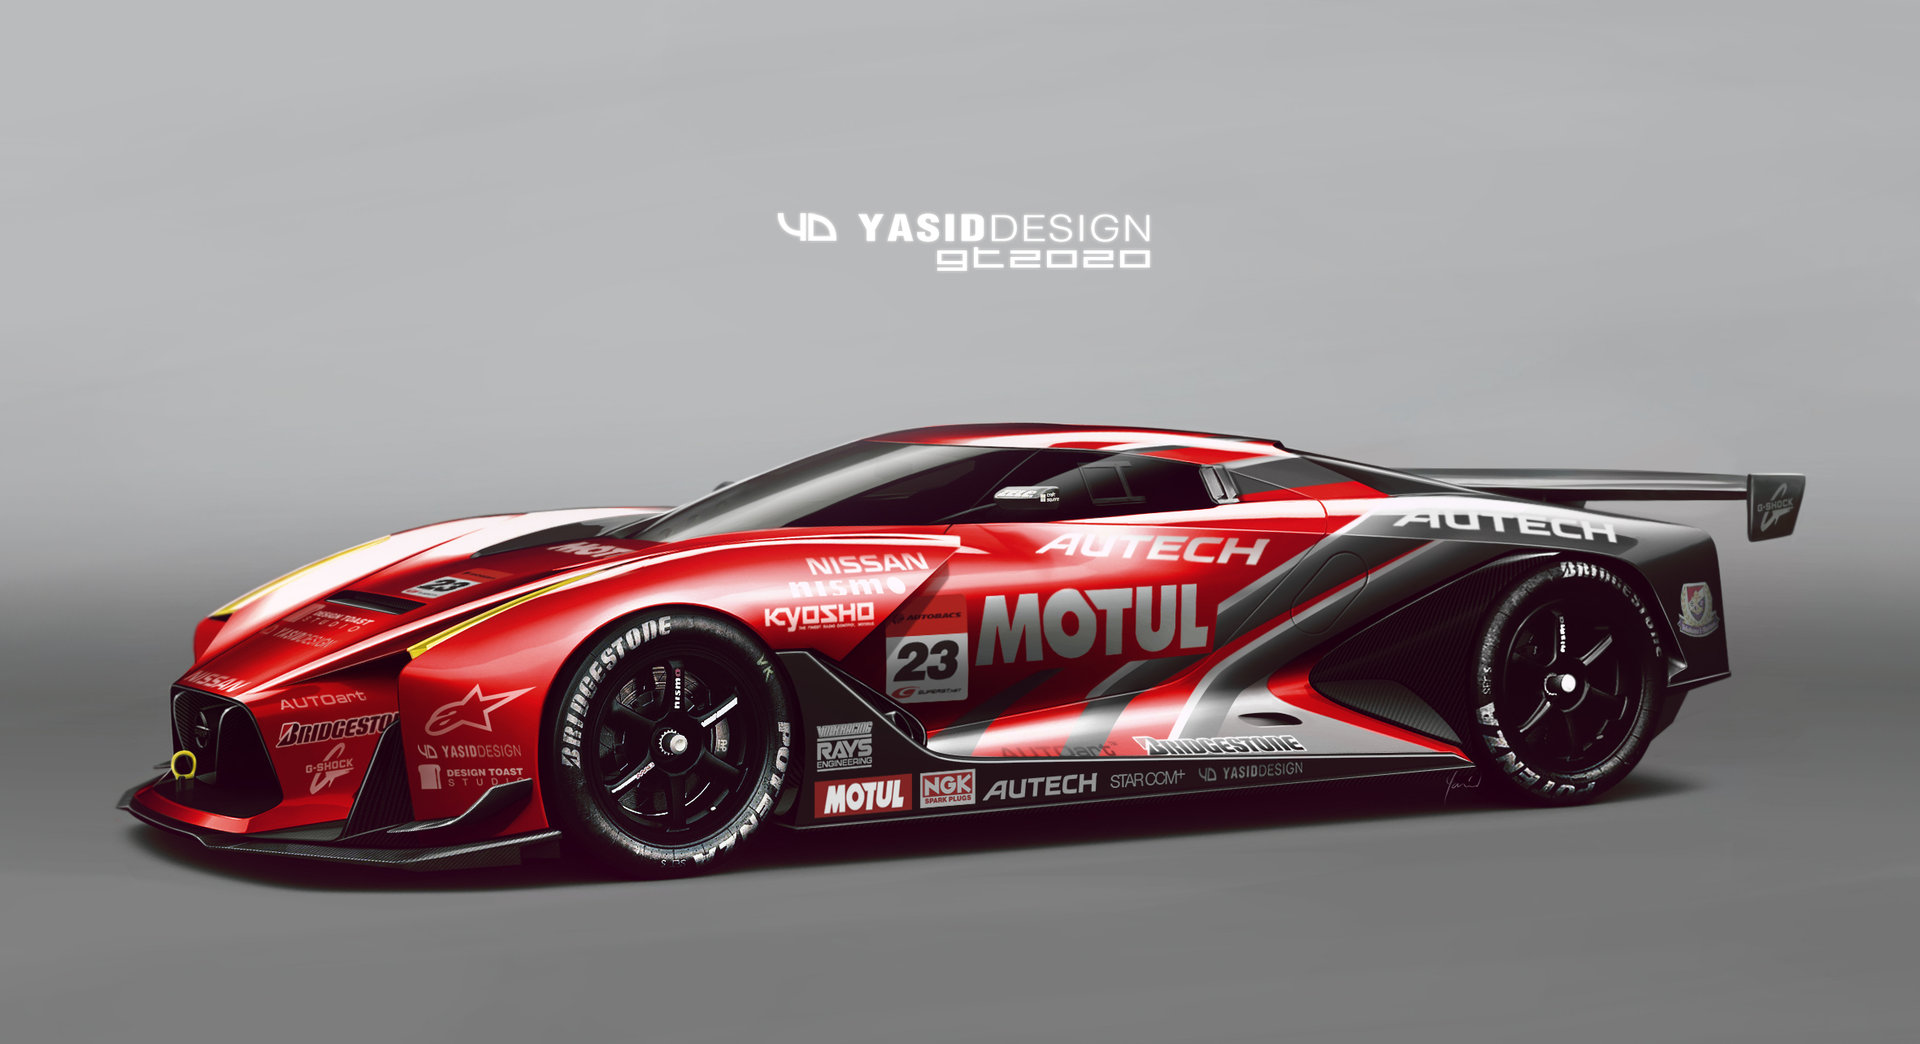 As children, many of us get a kick out of drawing cars. Most kids eventually grow out of it. But not Yasid Oozeear: he's still at his desk drawing cars, albeit for his own automotive design studio, Yasid Design.